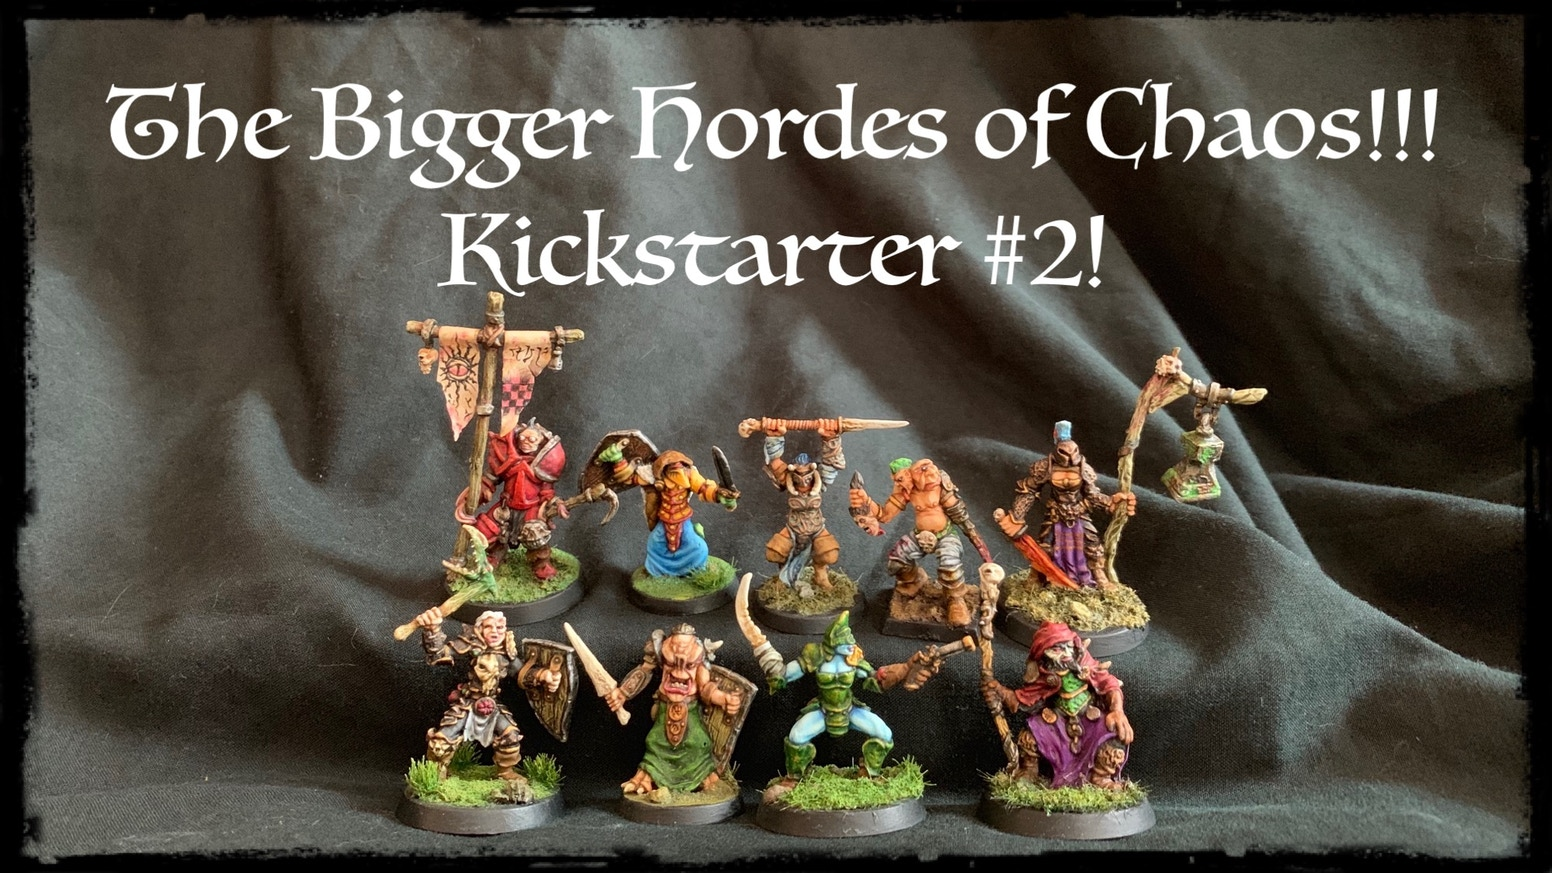 More Chaos Champions! A bigger selection of 28mm Oldhammer style white metal miniatures for tabletop gaming , painting and collecting.